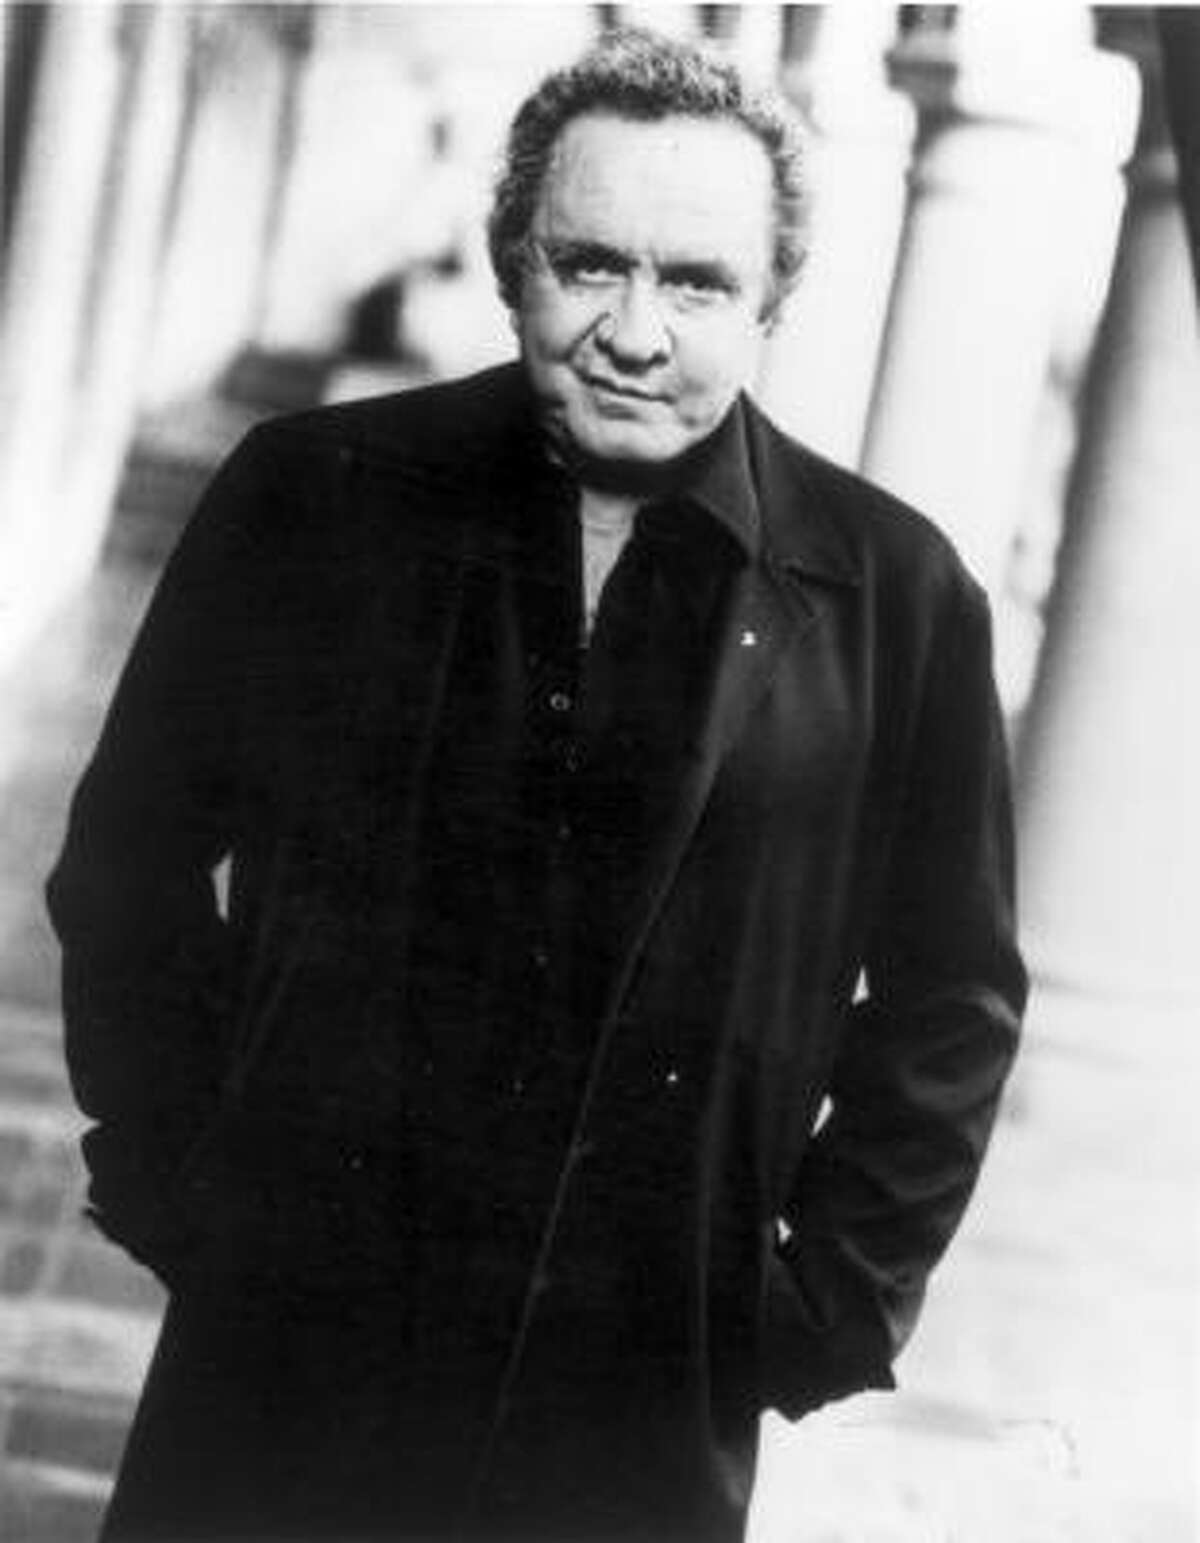 Johnny Cash was born J.R. Cash on Feb. 26, 1932 in Arkansas to Ray and Carrie.